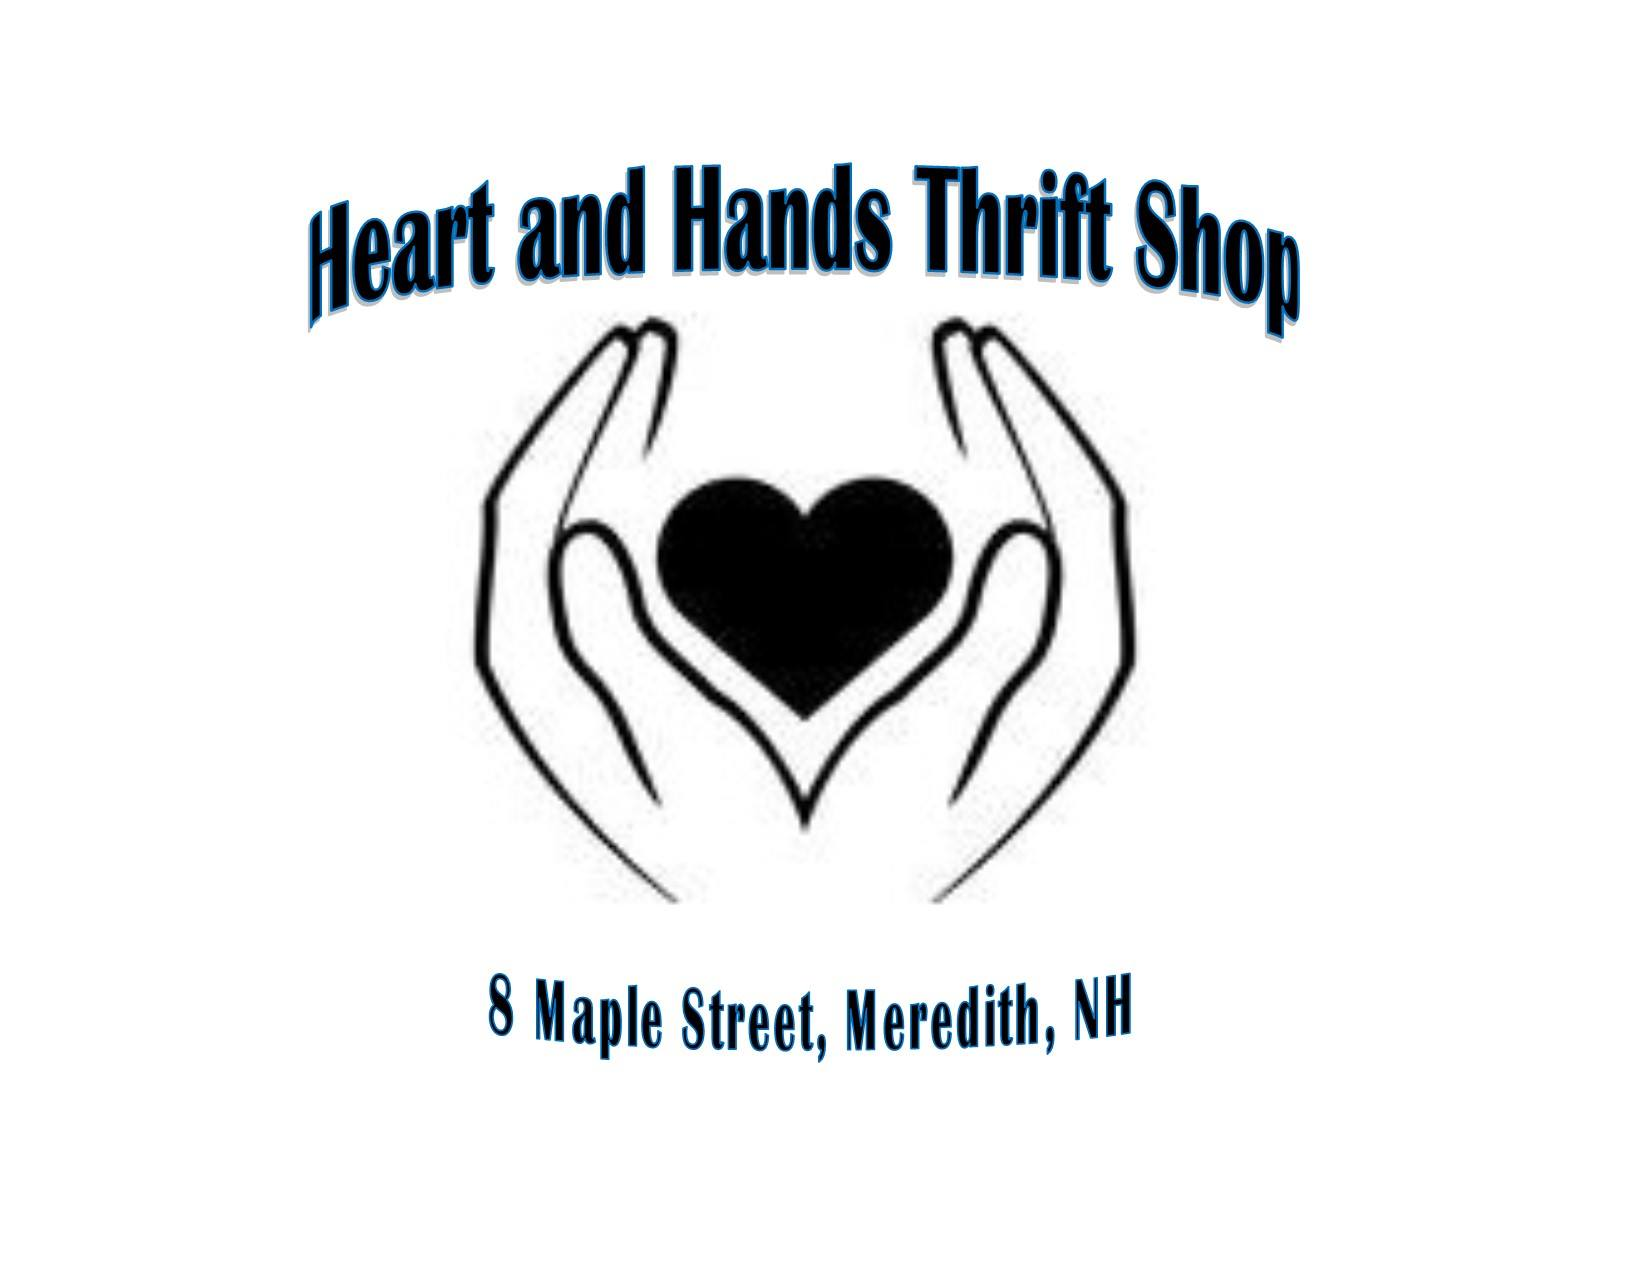 Hearts and Hands Thrift Shop